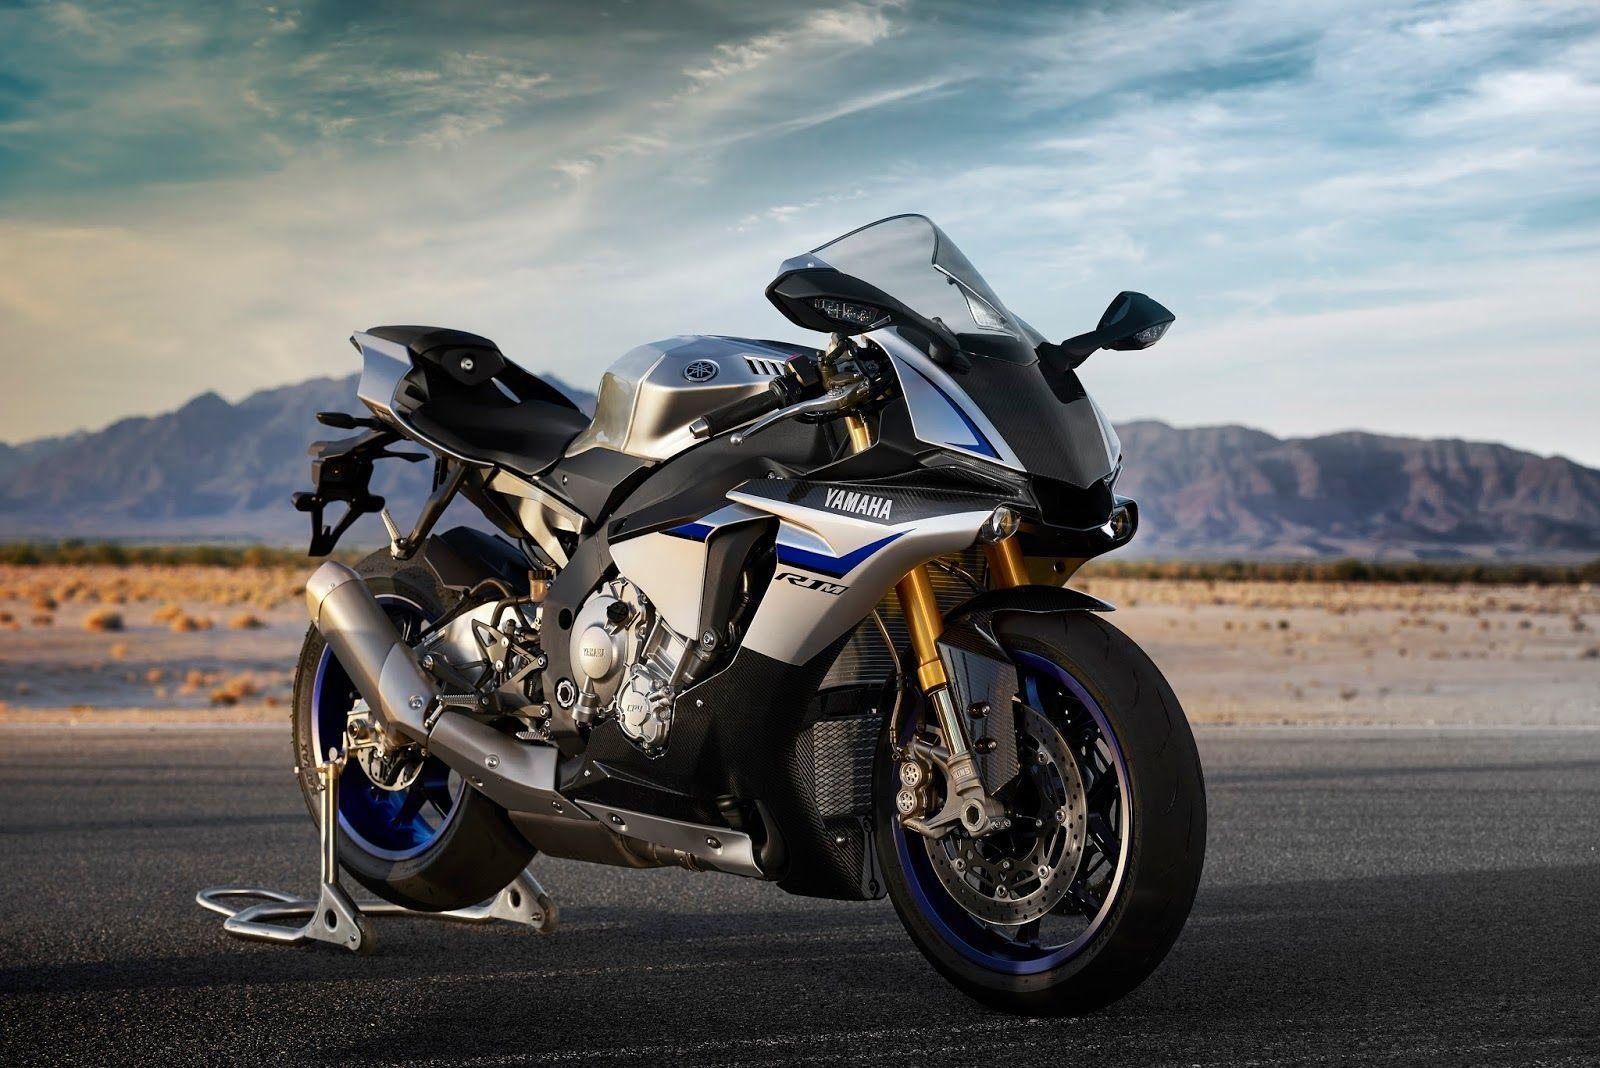 Yamaha Yzf R1m Wallpapers Top Free Yamaha Yzf R1m Backgrounds Wallpaperaccess